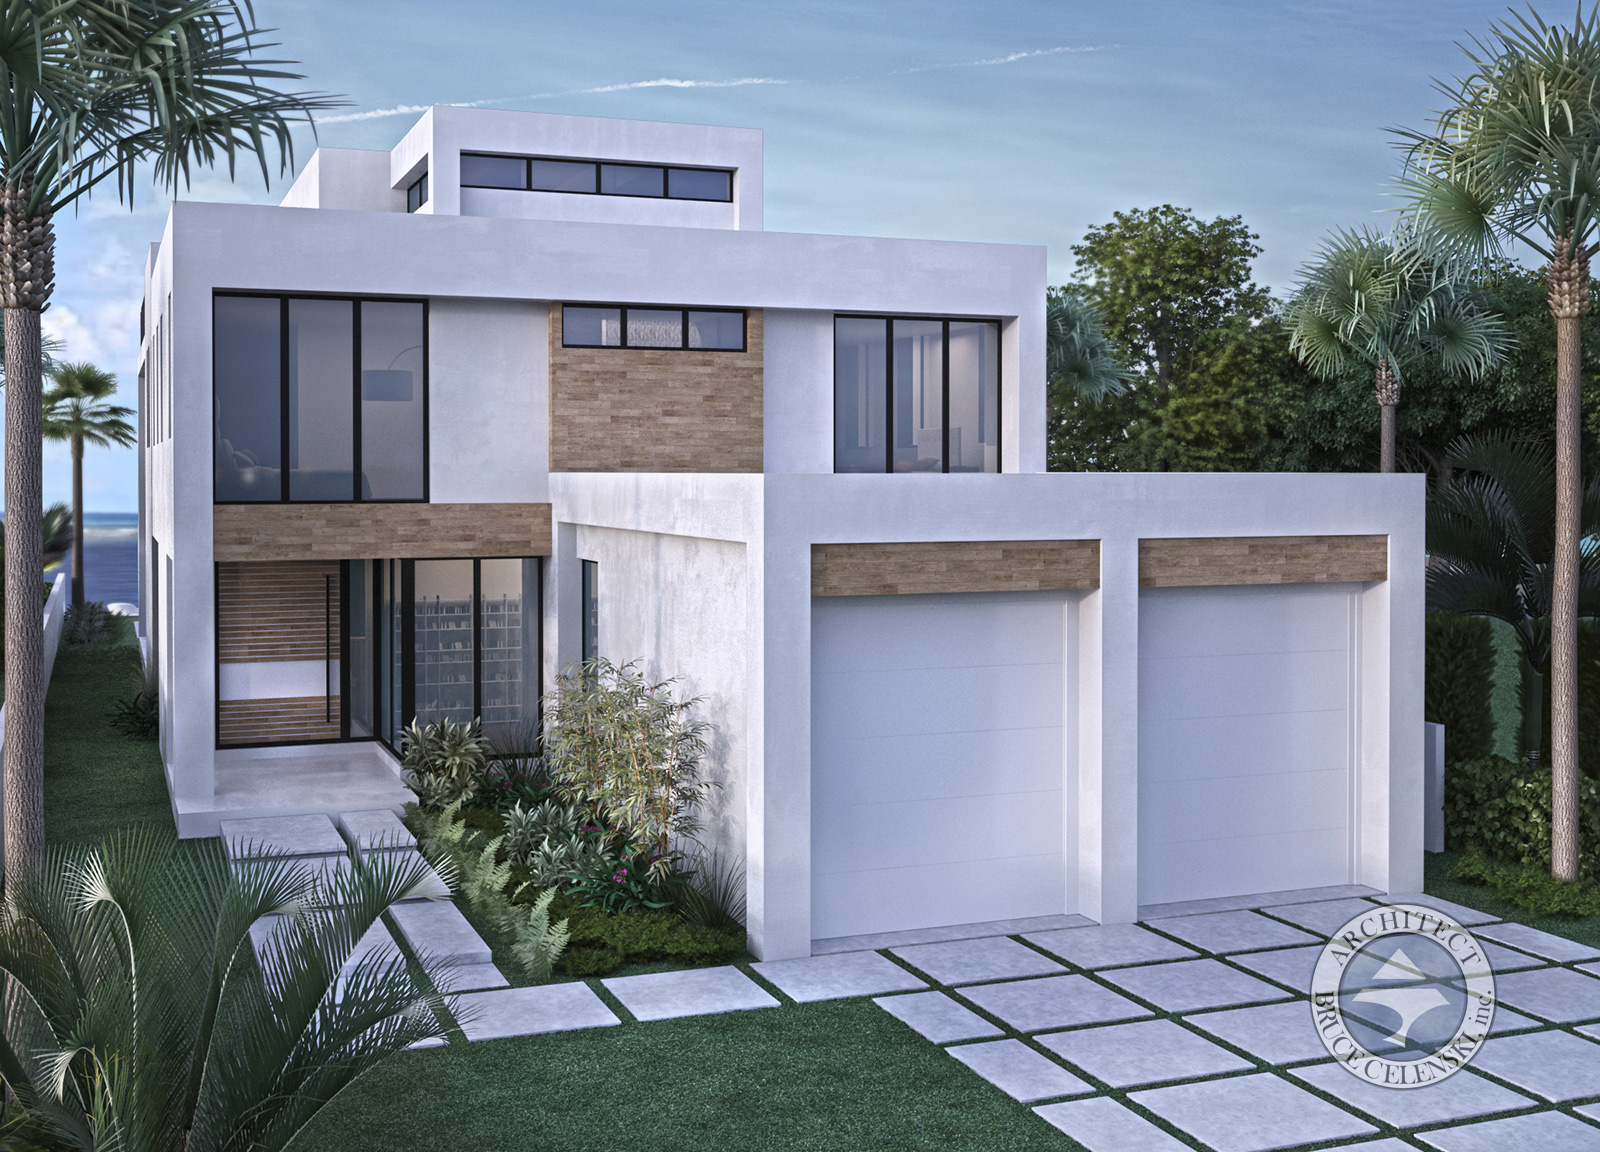 Fort Lauderdale architect luxury waterfront home front view